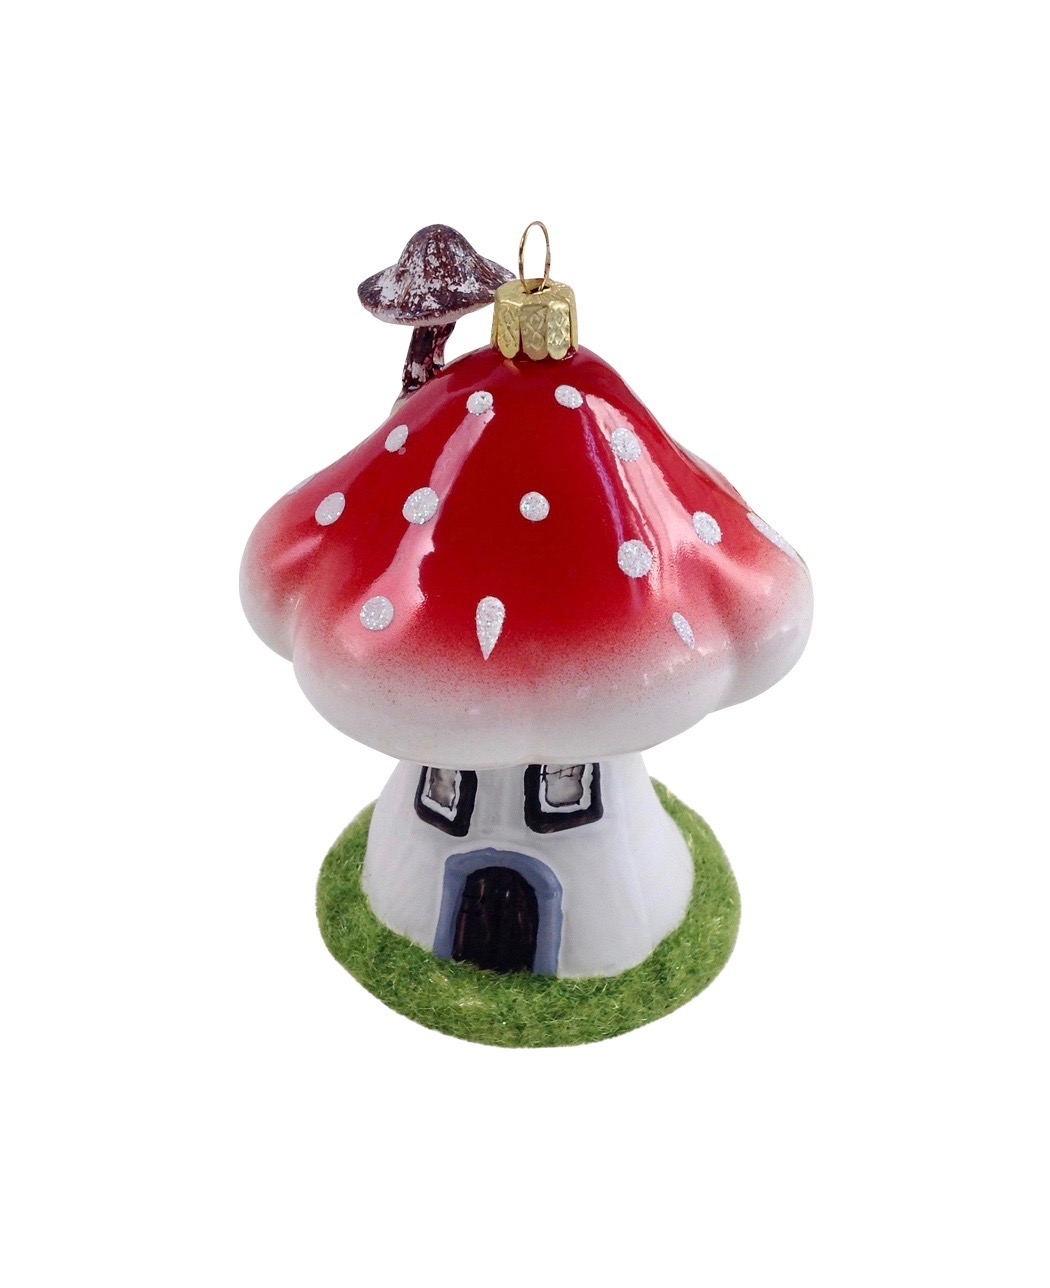 Red mushroom ornament go home modern decor gifts for Modern house ornaments